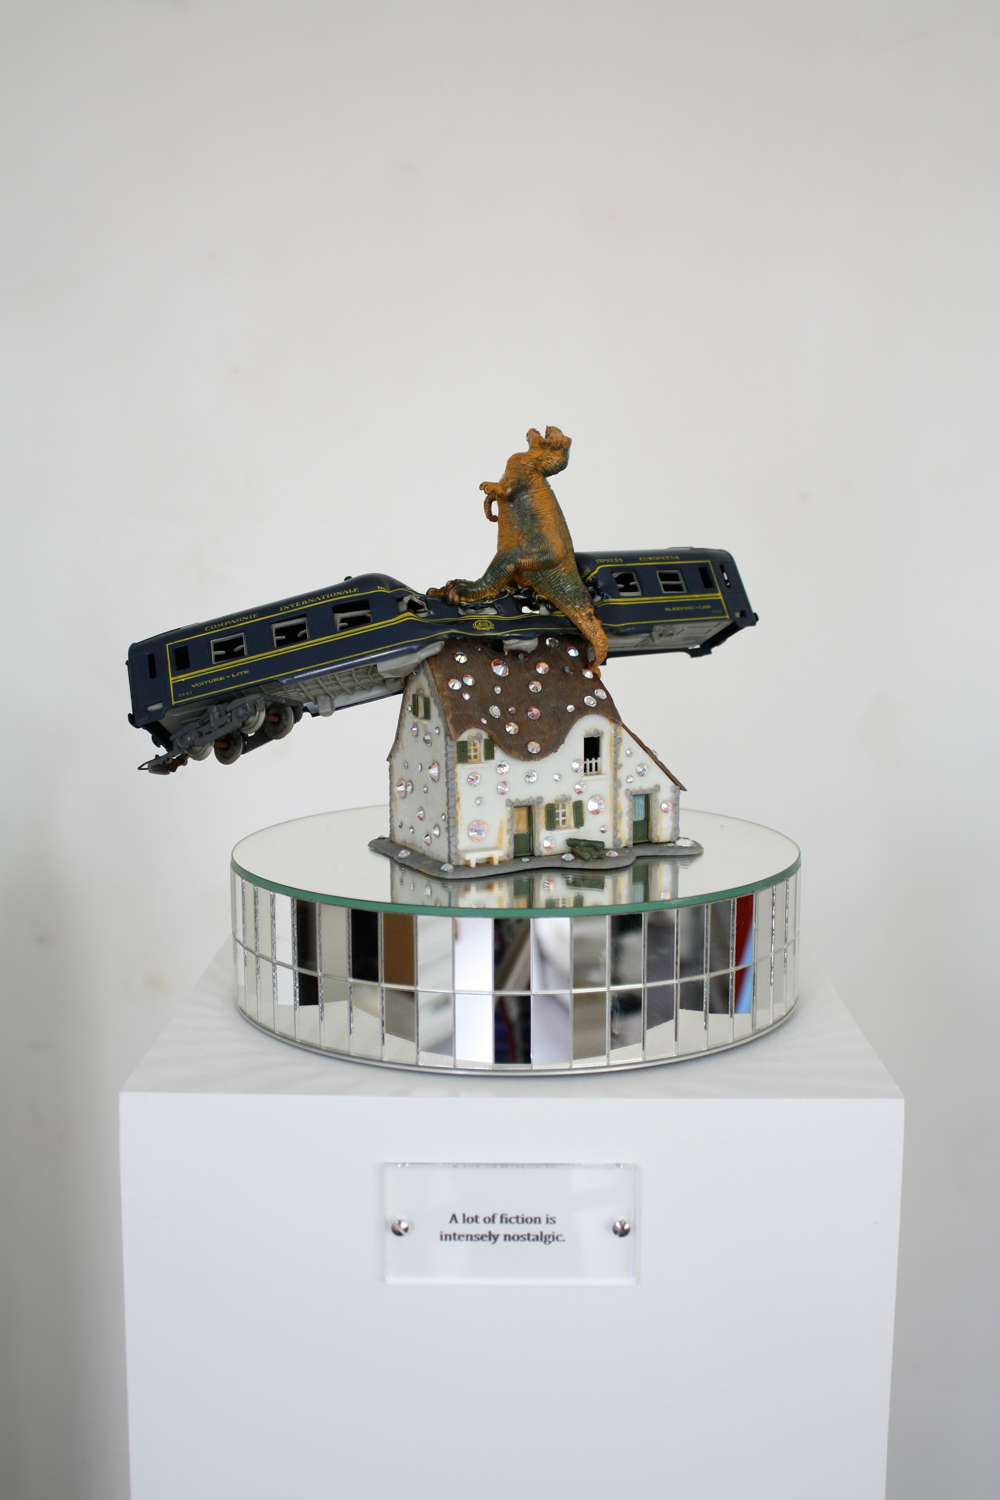 Pierre Ardouvin   A lot of fiction is intensely nostalgic , 2014 Painted pedestal, mirrored rotating stand, engraved plexiglass plate, found objects 53 5/32 x 9 27/32 x 9 27/32 in (135 x 25 x 25 cm) PA14S9